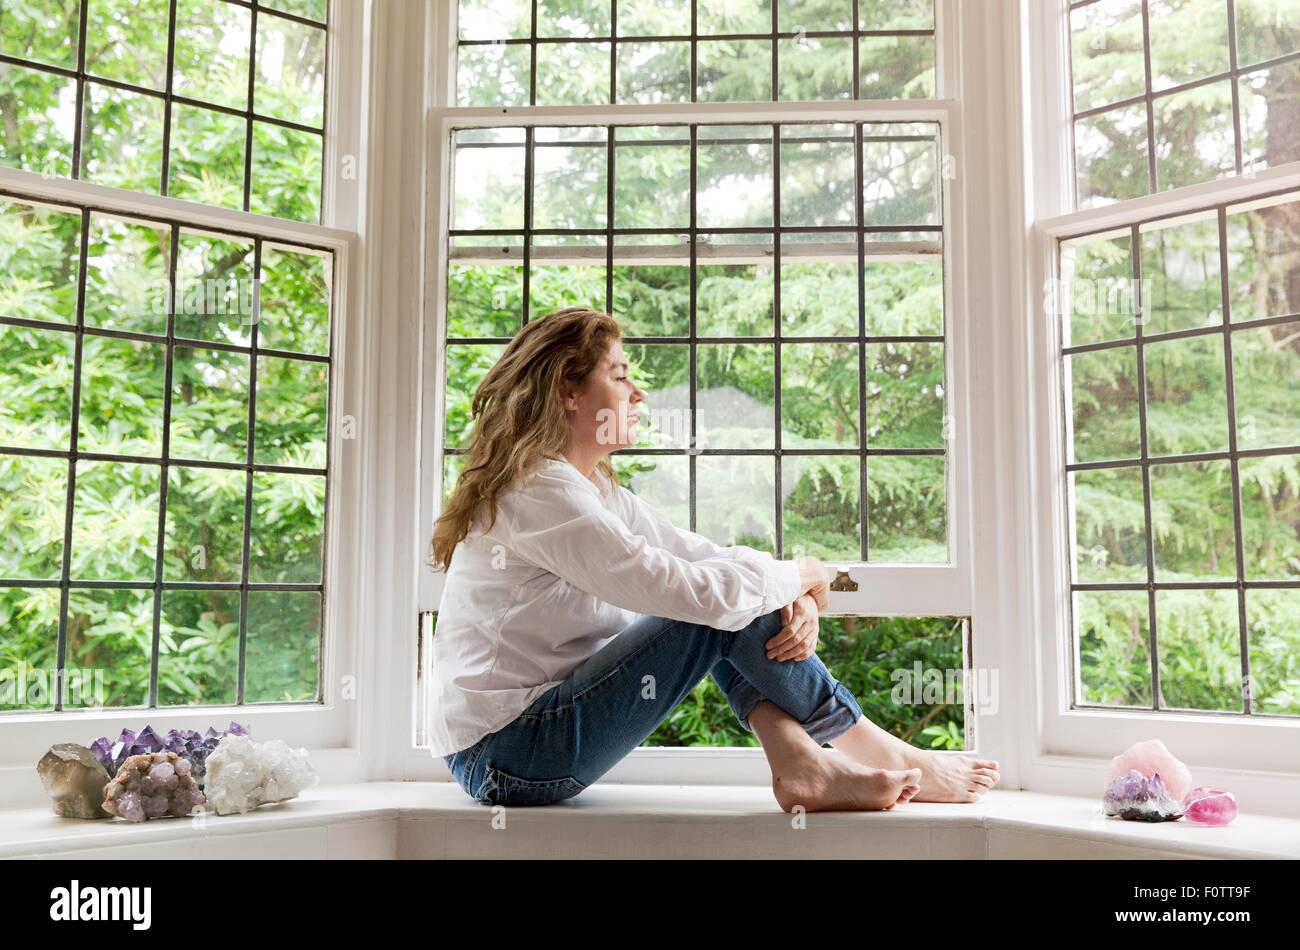 Portrait of mature woman sitting on living room windowsill looking out of window - Stock Image